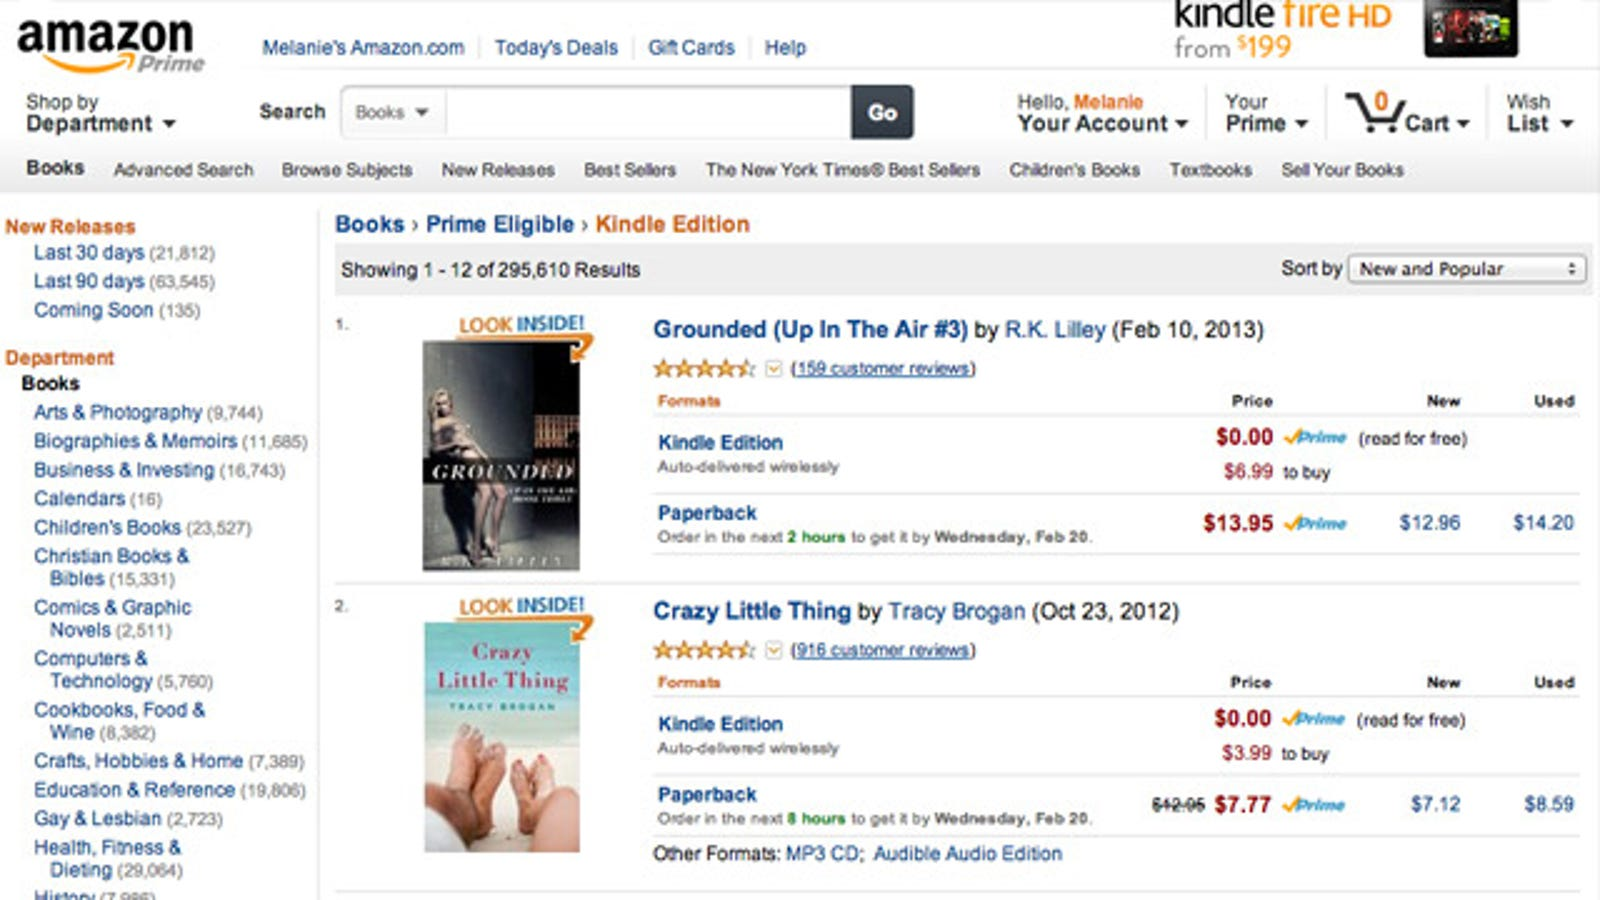 How to View the Entire Free Kindle Lending Library from Your